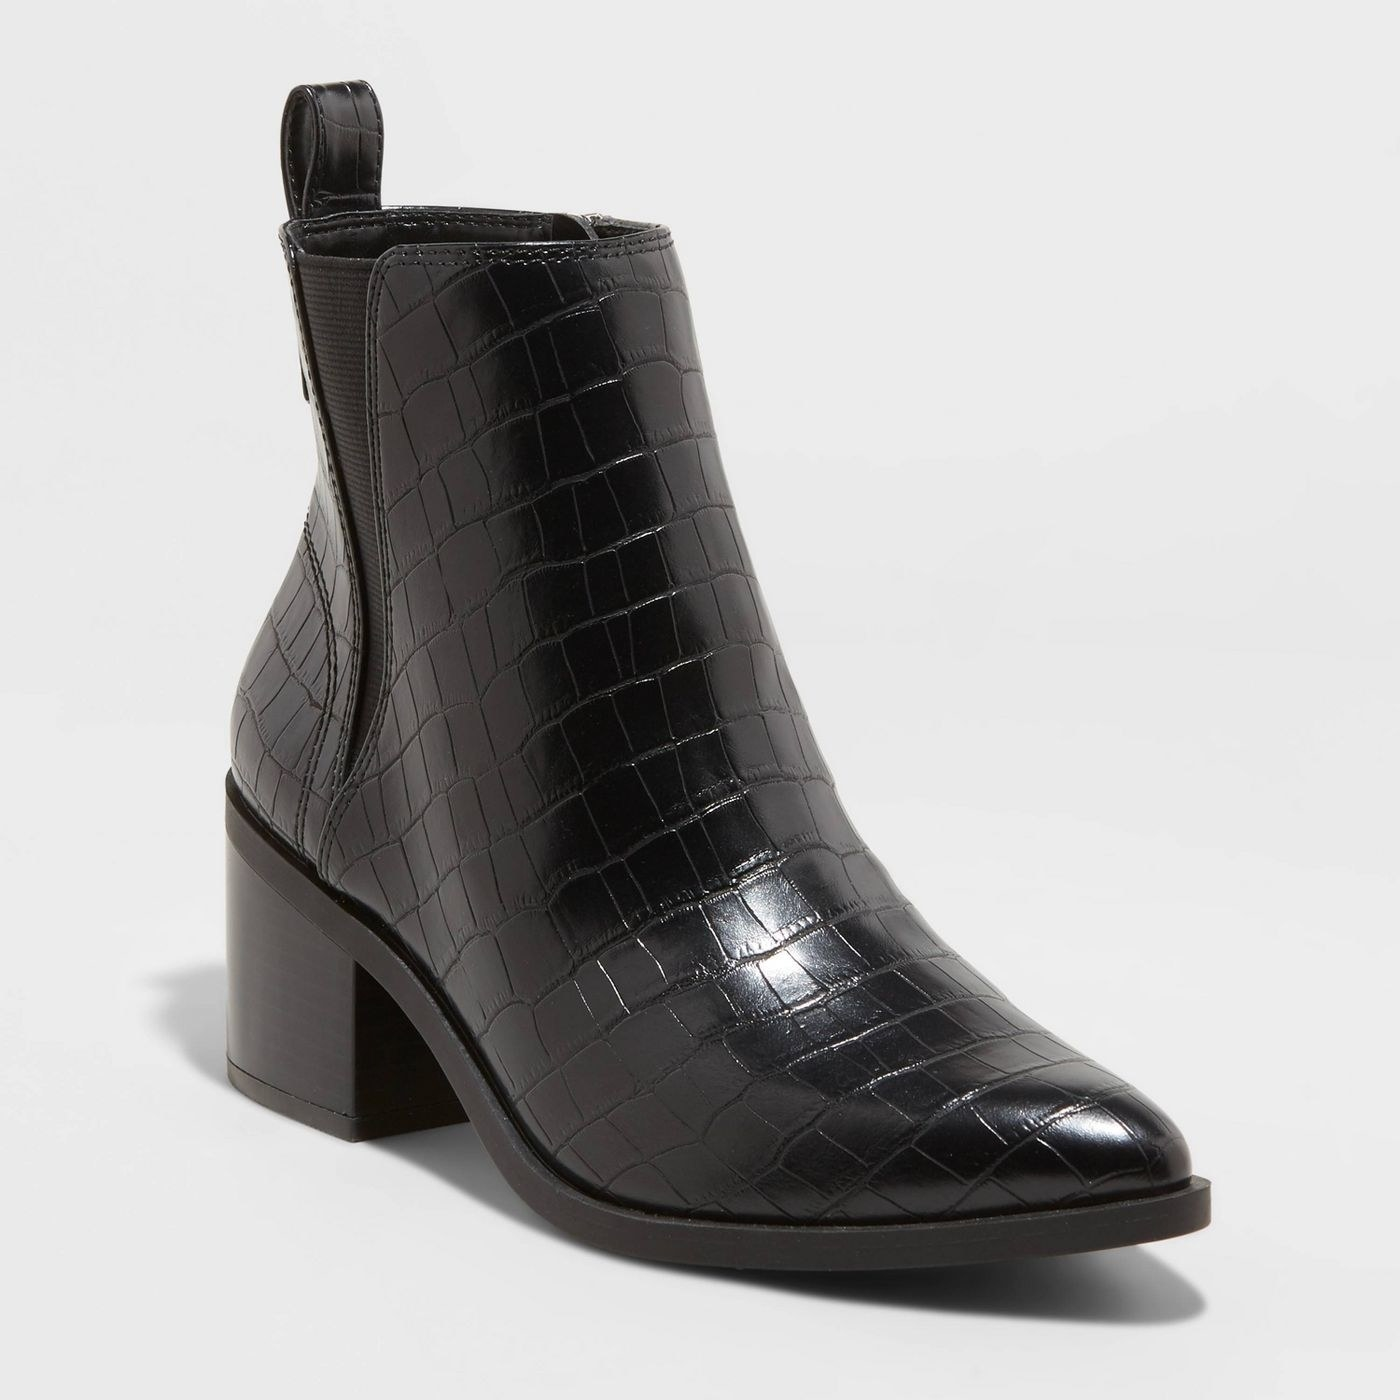 A pair of croc pointed to heeled black chelsea boots